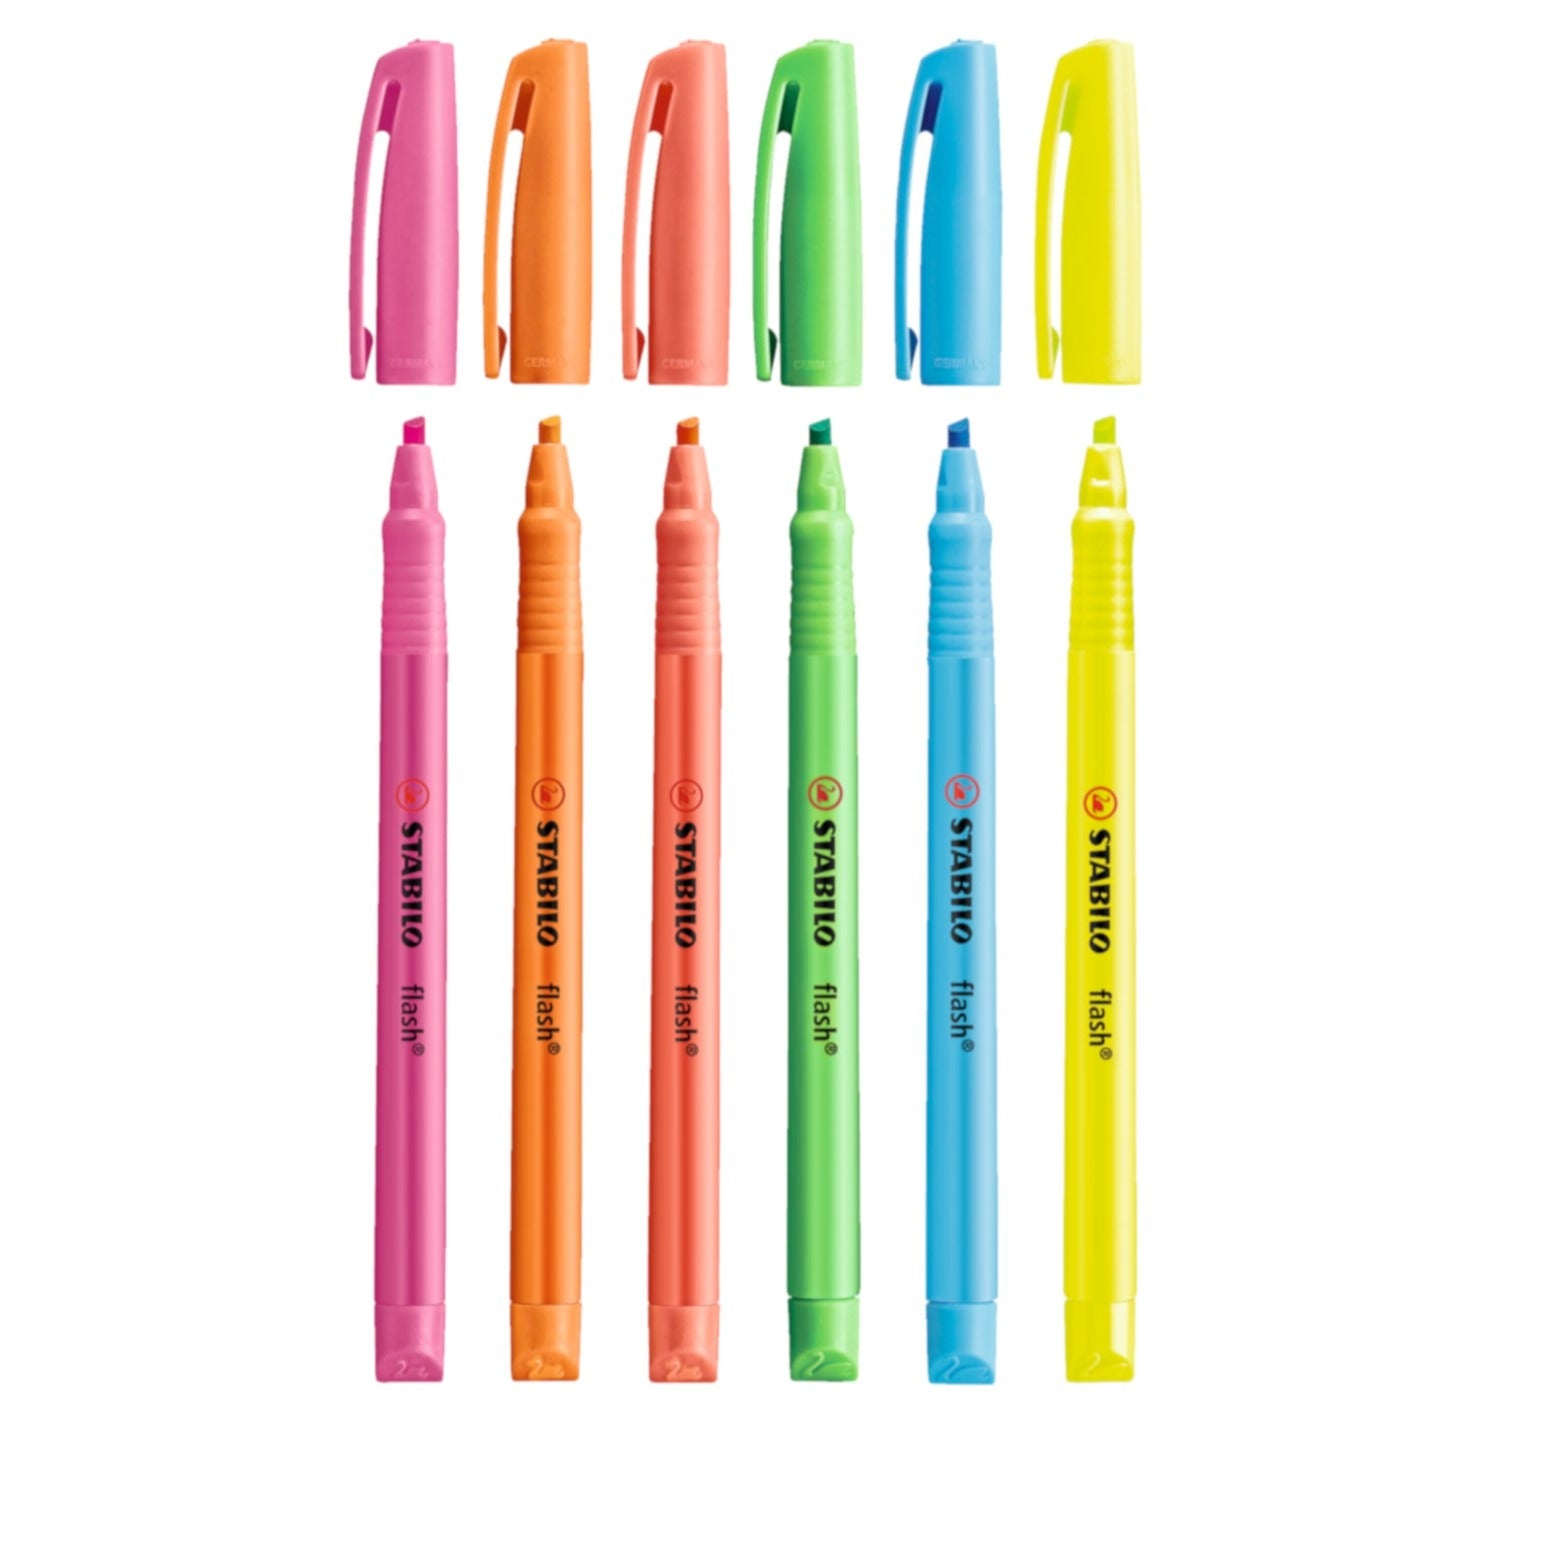 STABILO Flash Pen-style Highlighter with Musical Notes Design - Schwan-STABILO -Most colourful Stationery Shop